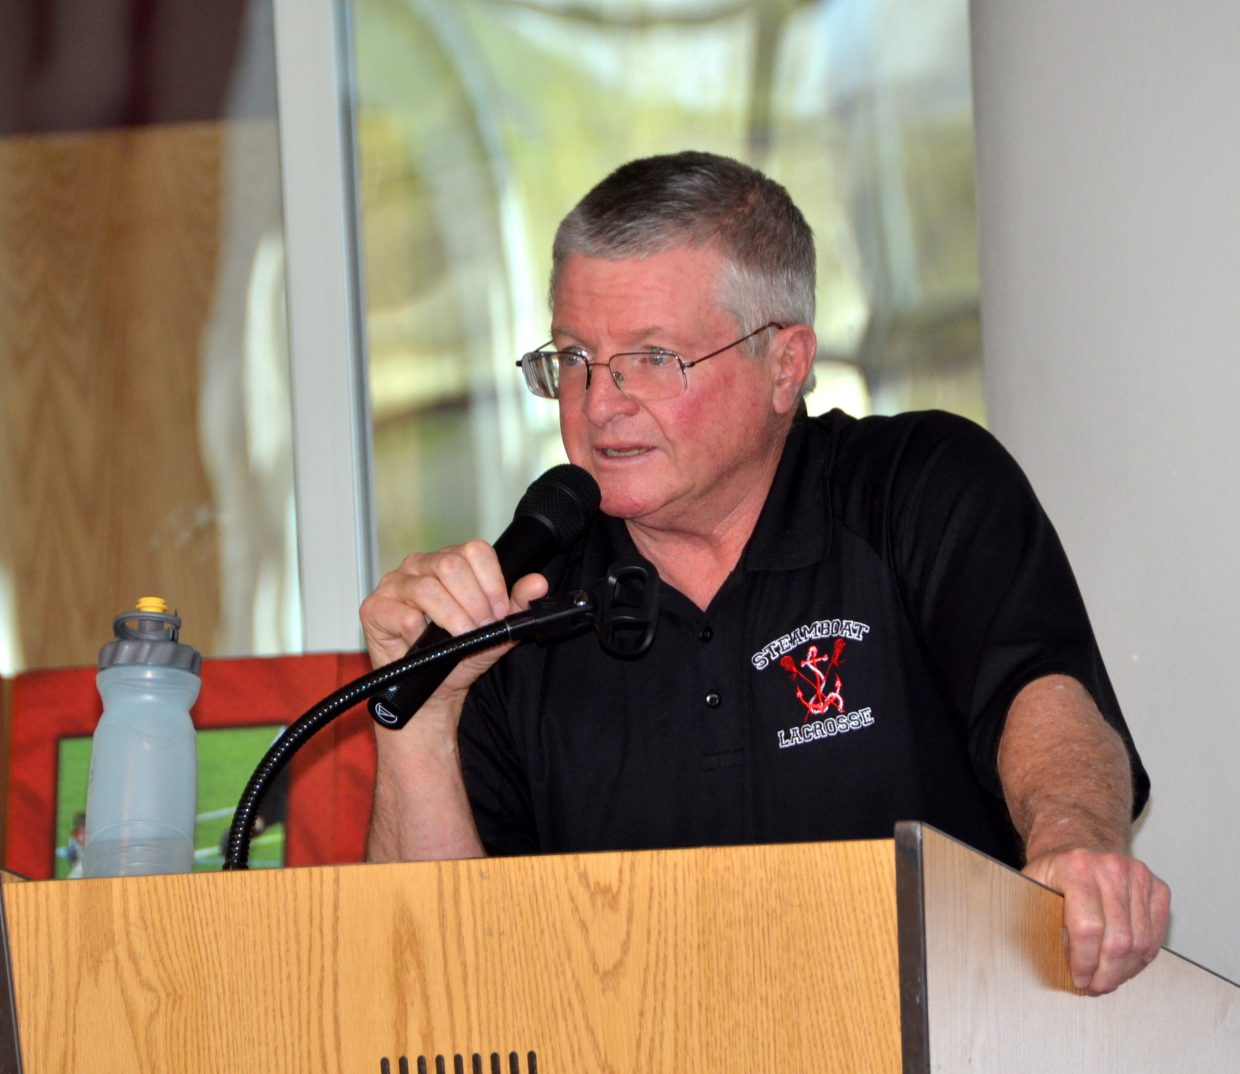 Best of luck to coach Bob Hiester, who spoke very eloquently at tonight's SSHS Lacrosse Banquet. It is coach Hiester's last banquet after 45 years of coaching in Colorado. He is retiring from coaching and teaching this year.